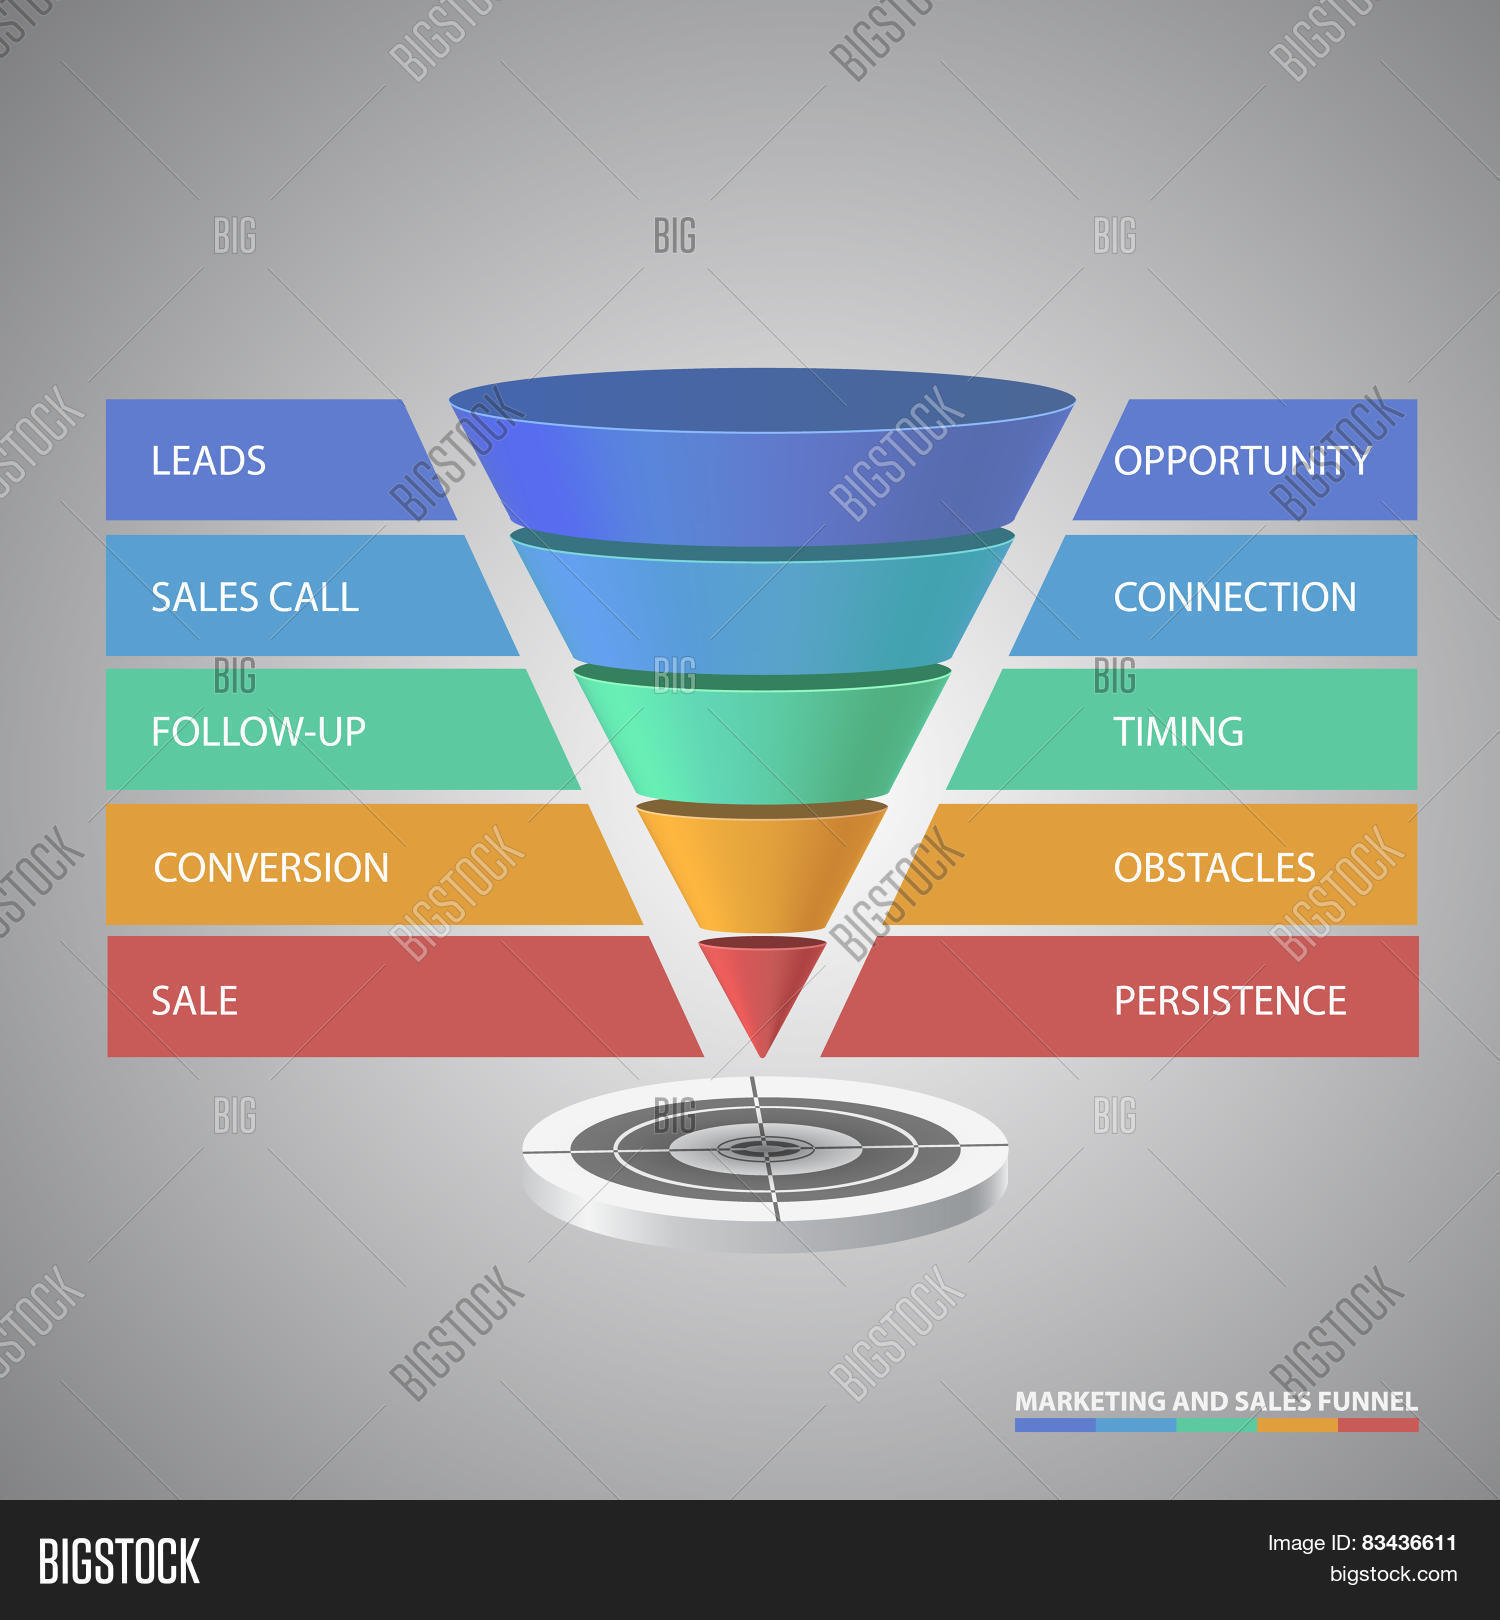 Sales Funnel Template Vector Photo Free Trial Bigstock